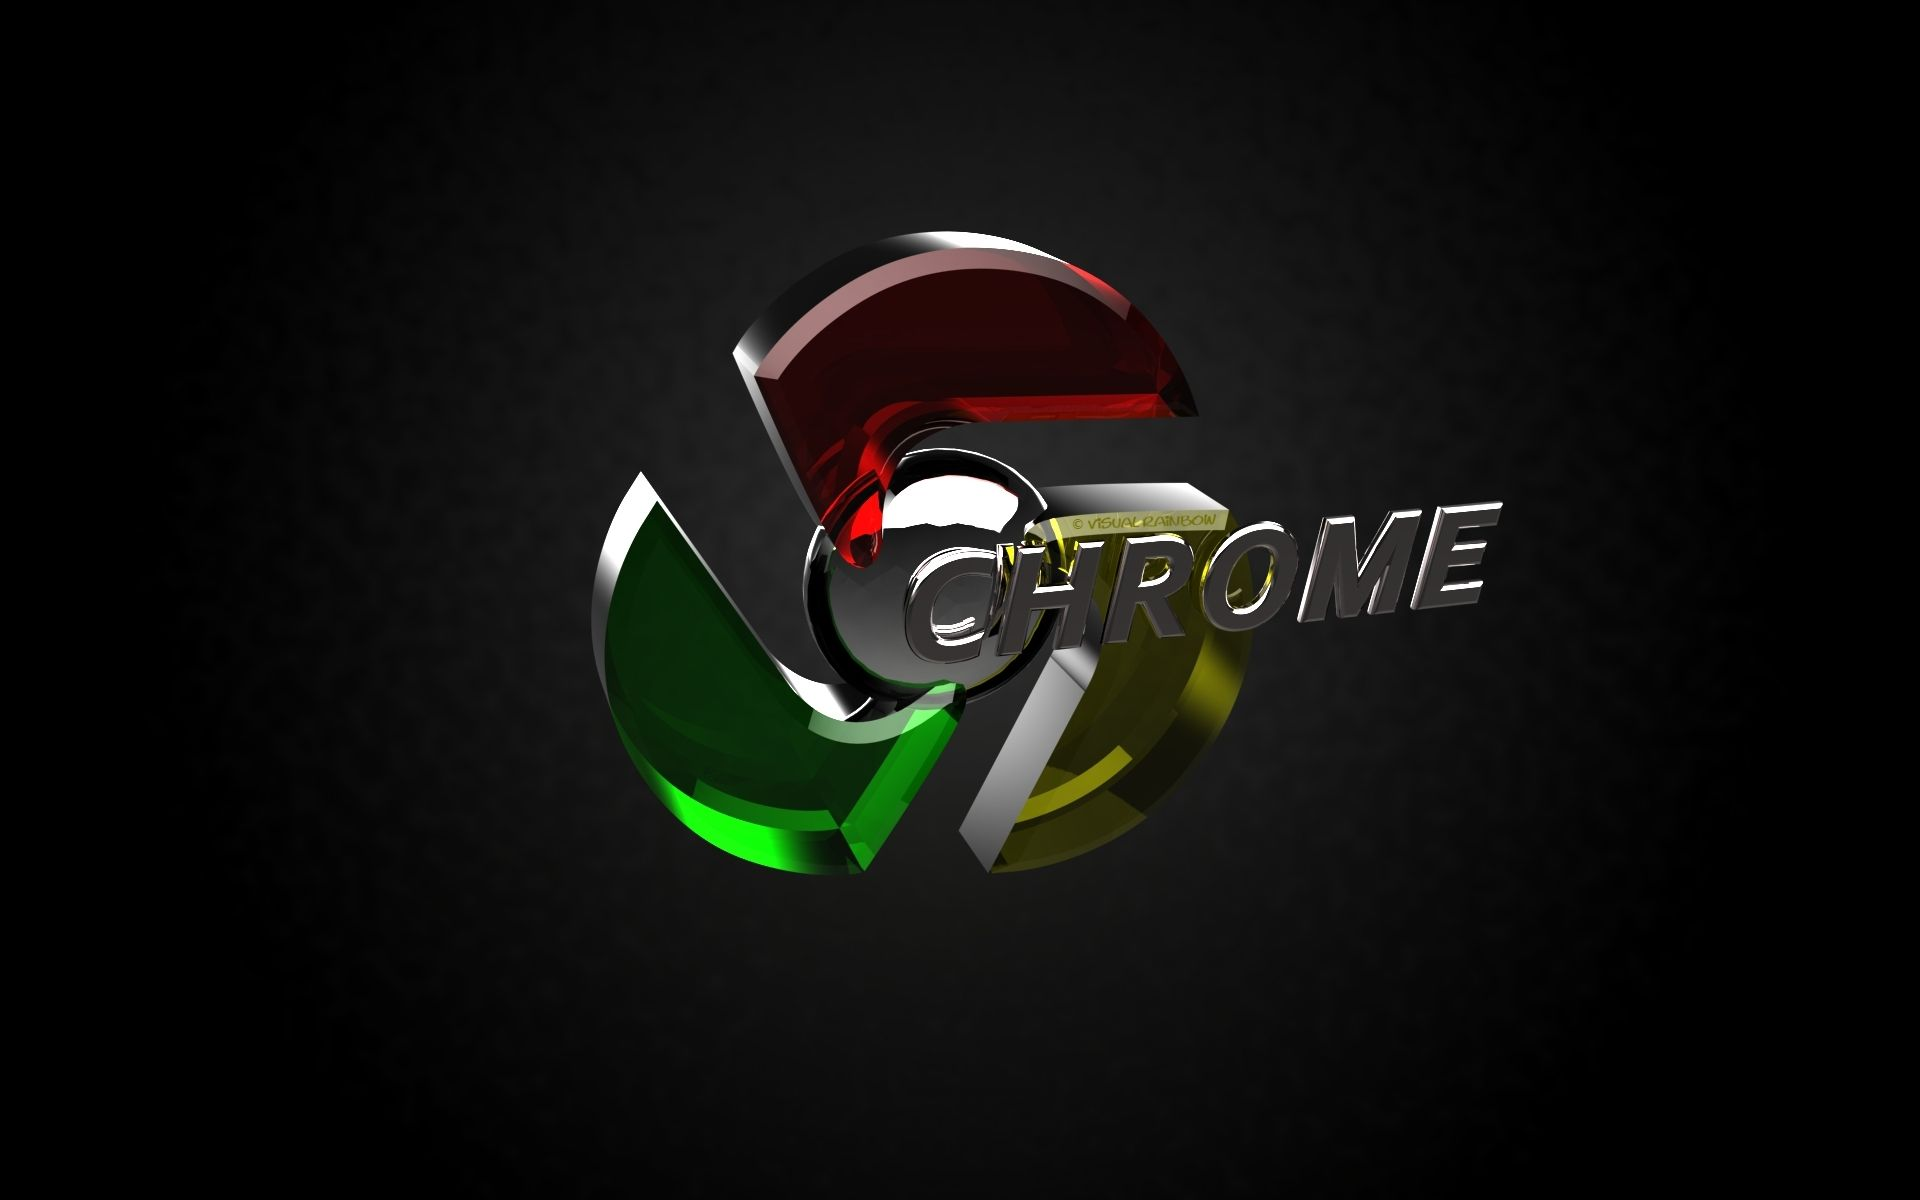 3D Google Chrome Logo Animated Black Wallpaper Desktop 283899 1920x1200